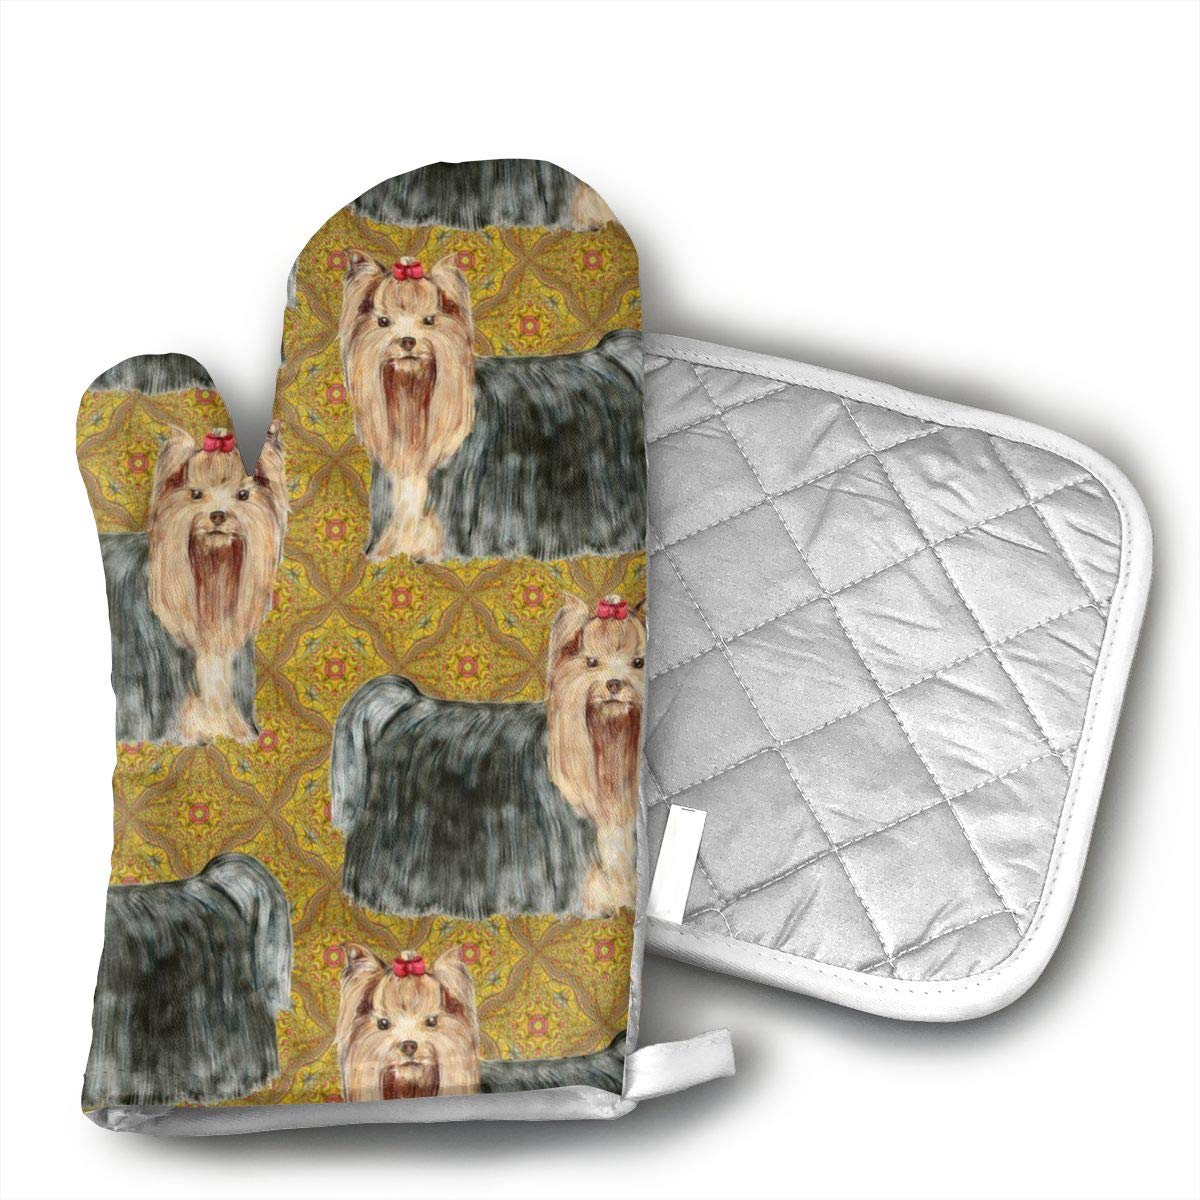 Sjiwqoj8 Yorkies Kitchen Oven Mitts,Oven Mitts and Pot Holders,Heat Resistant with Quilted Cotton Lining,Cooking,Baking,Grilling,Barbecue